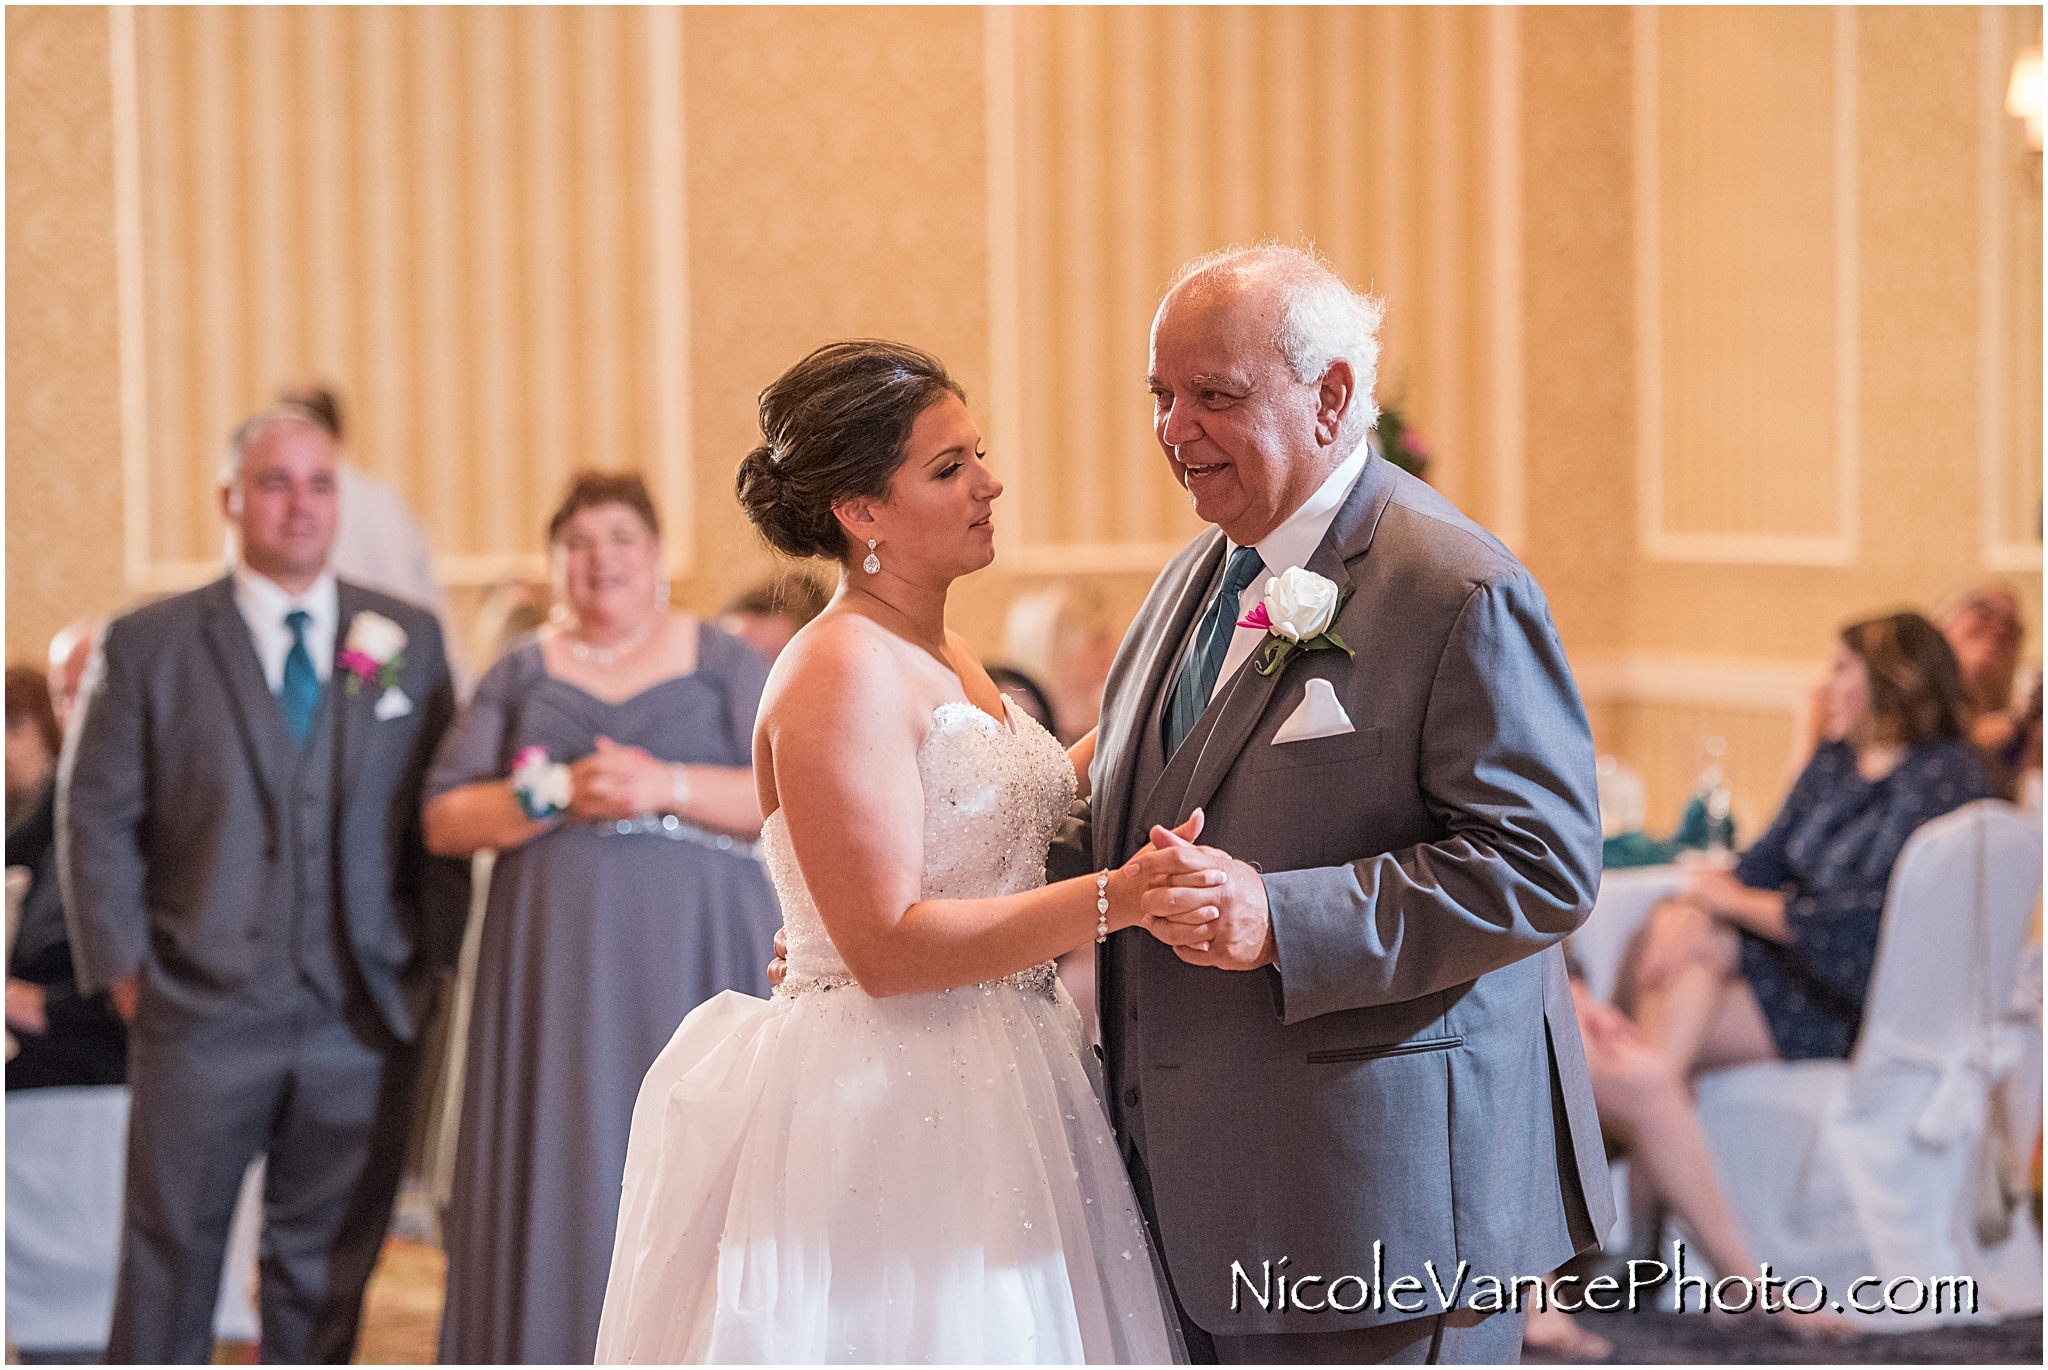 The bride dances with her new father in law in the ballroom at Virginia Crossings.